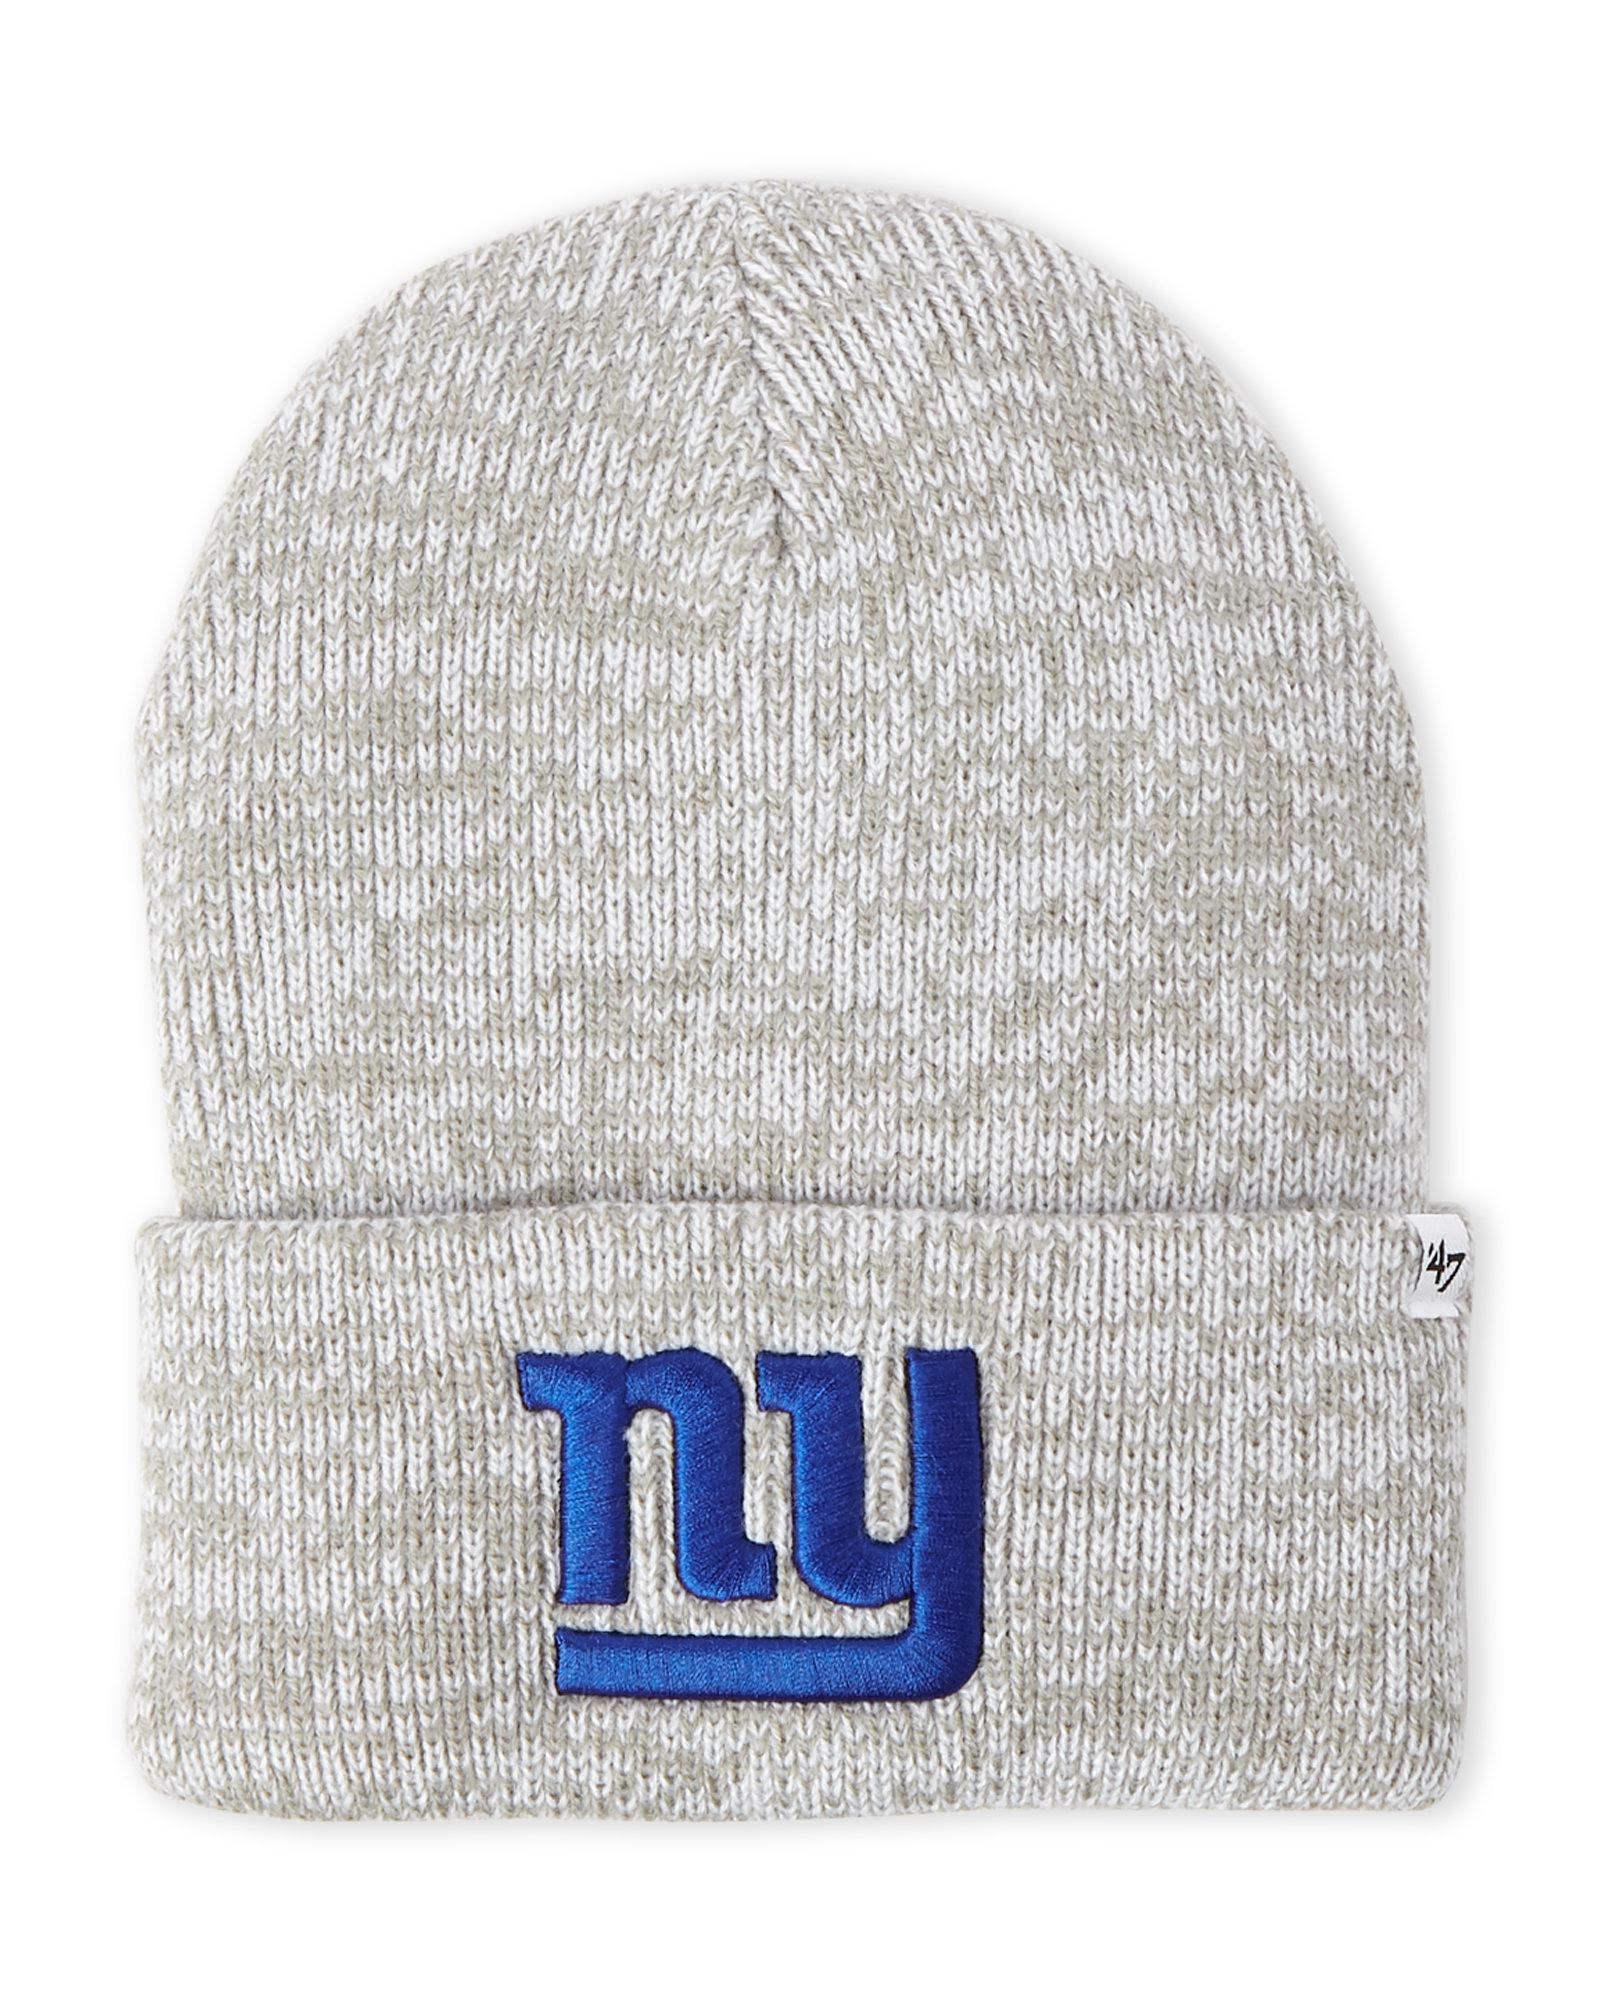 bfe849bec7a Lyst - 47 Brand New York Giants Raised Cuff Beanie in Gray for Men